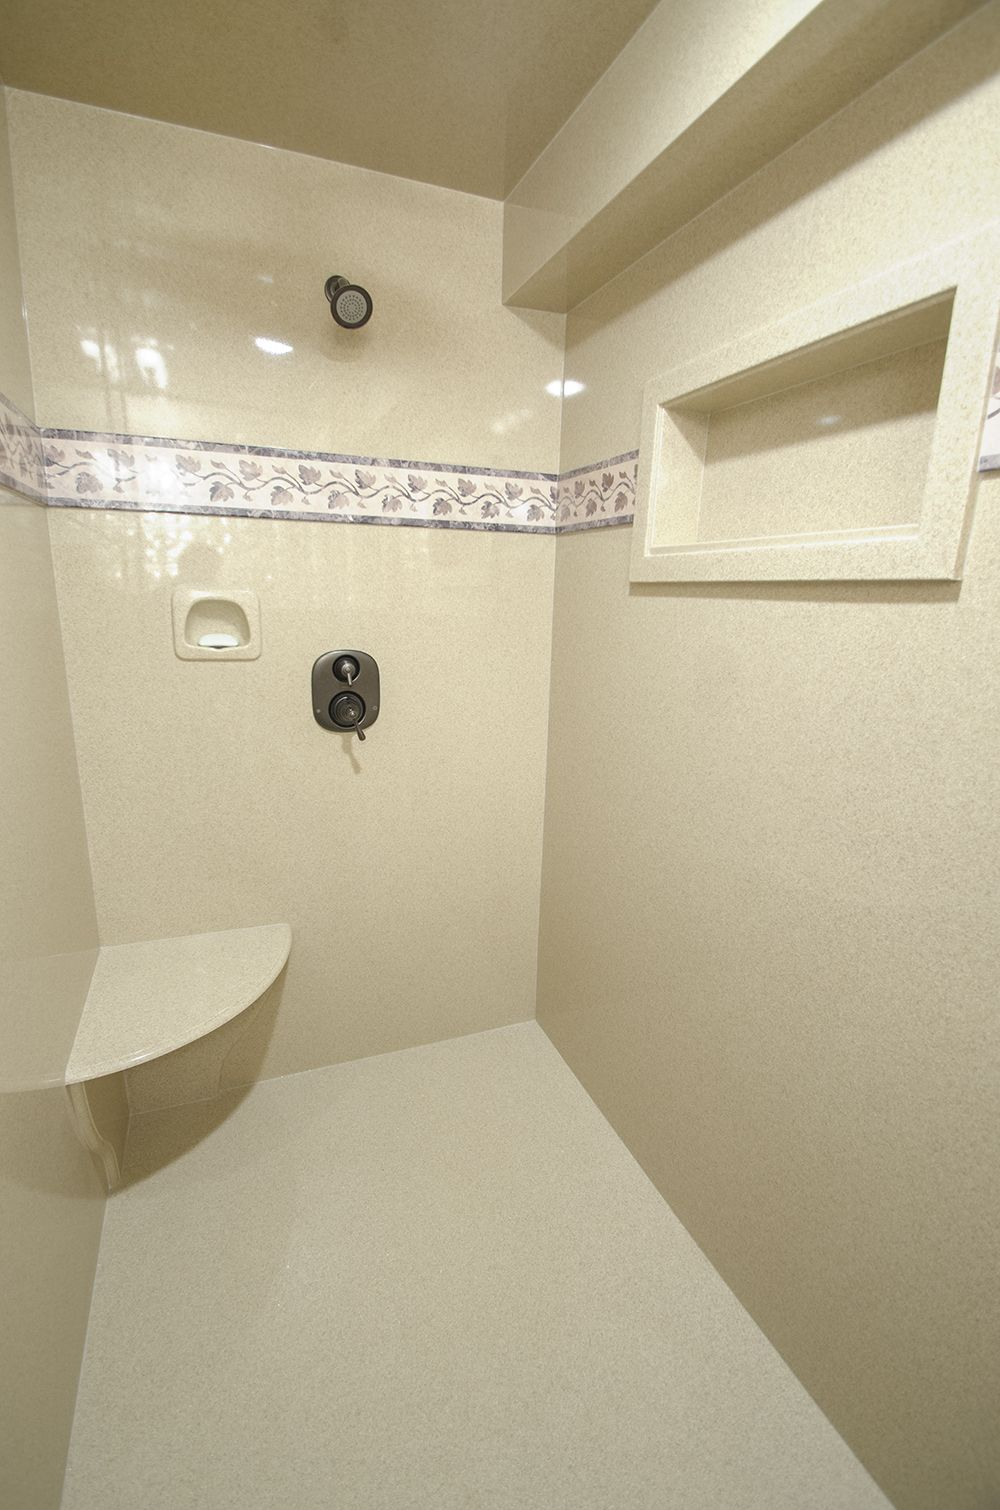 Gem granite bathrooms - Shower In Grout Free Cultured Granite In Spice With Trustone Border Cubby